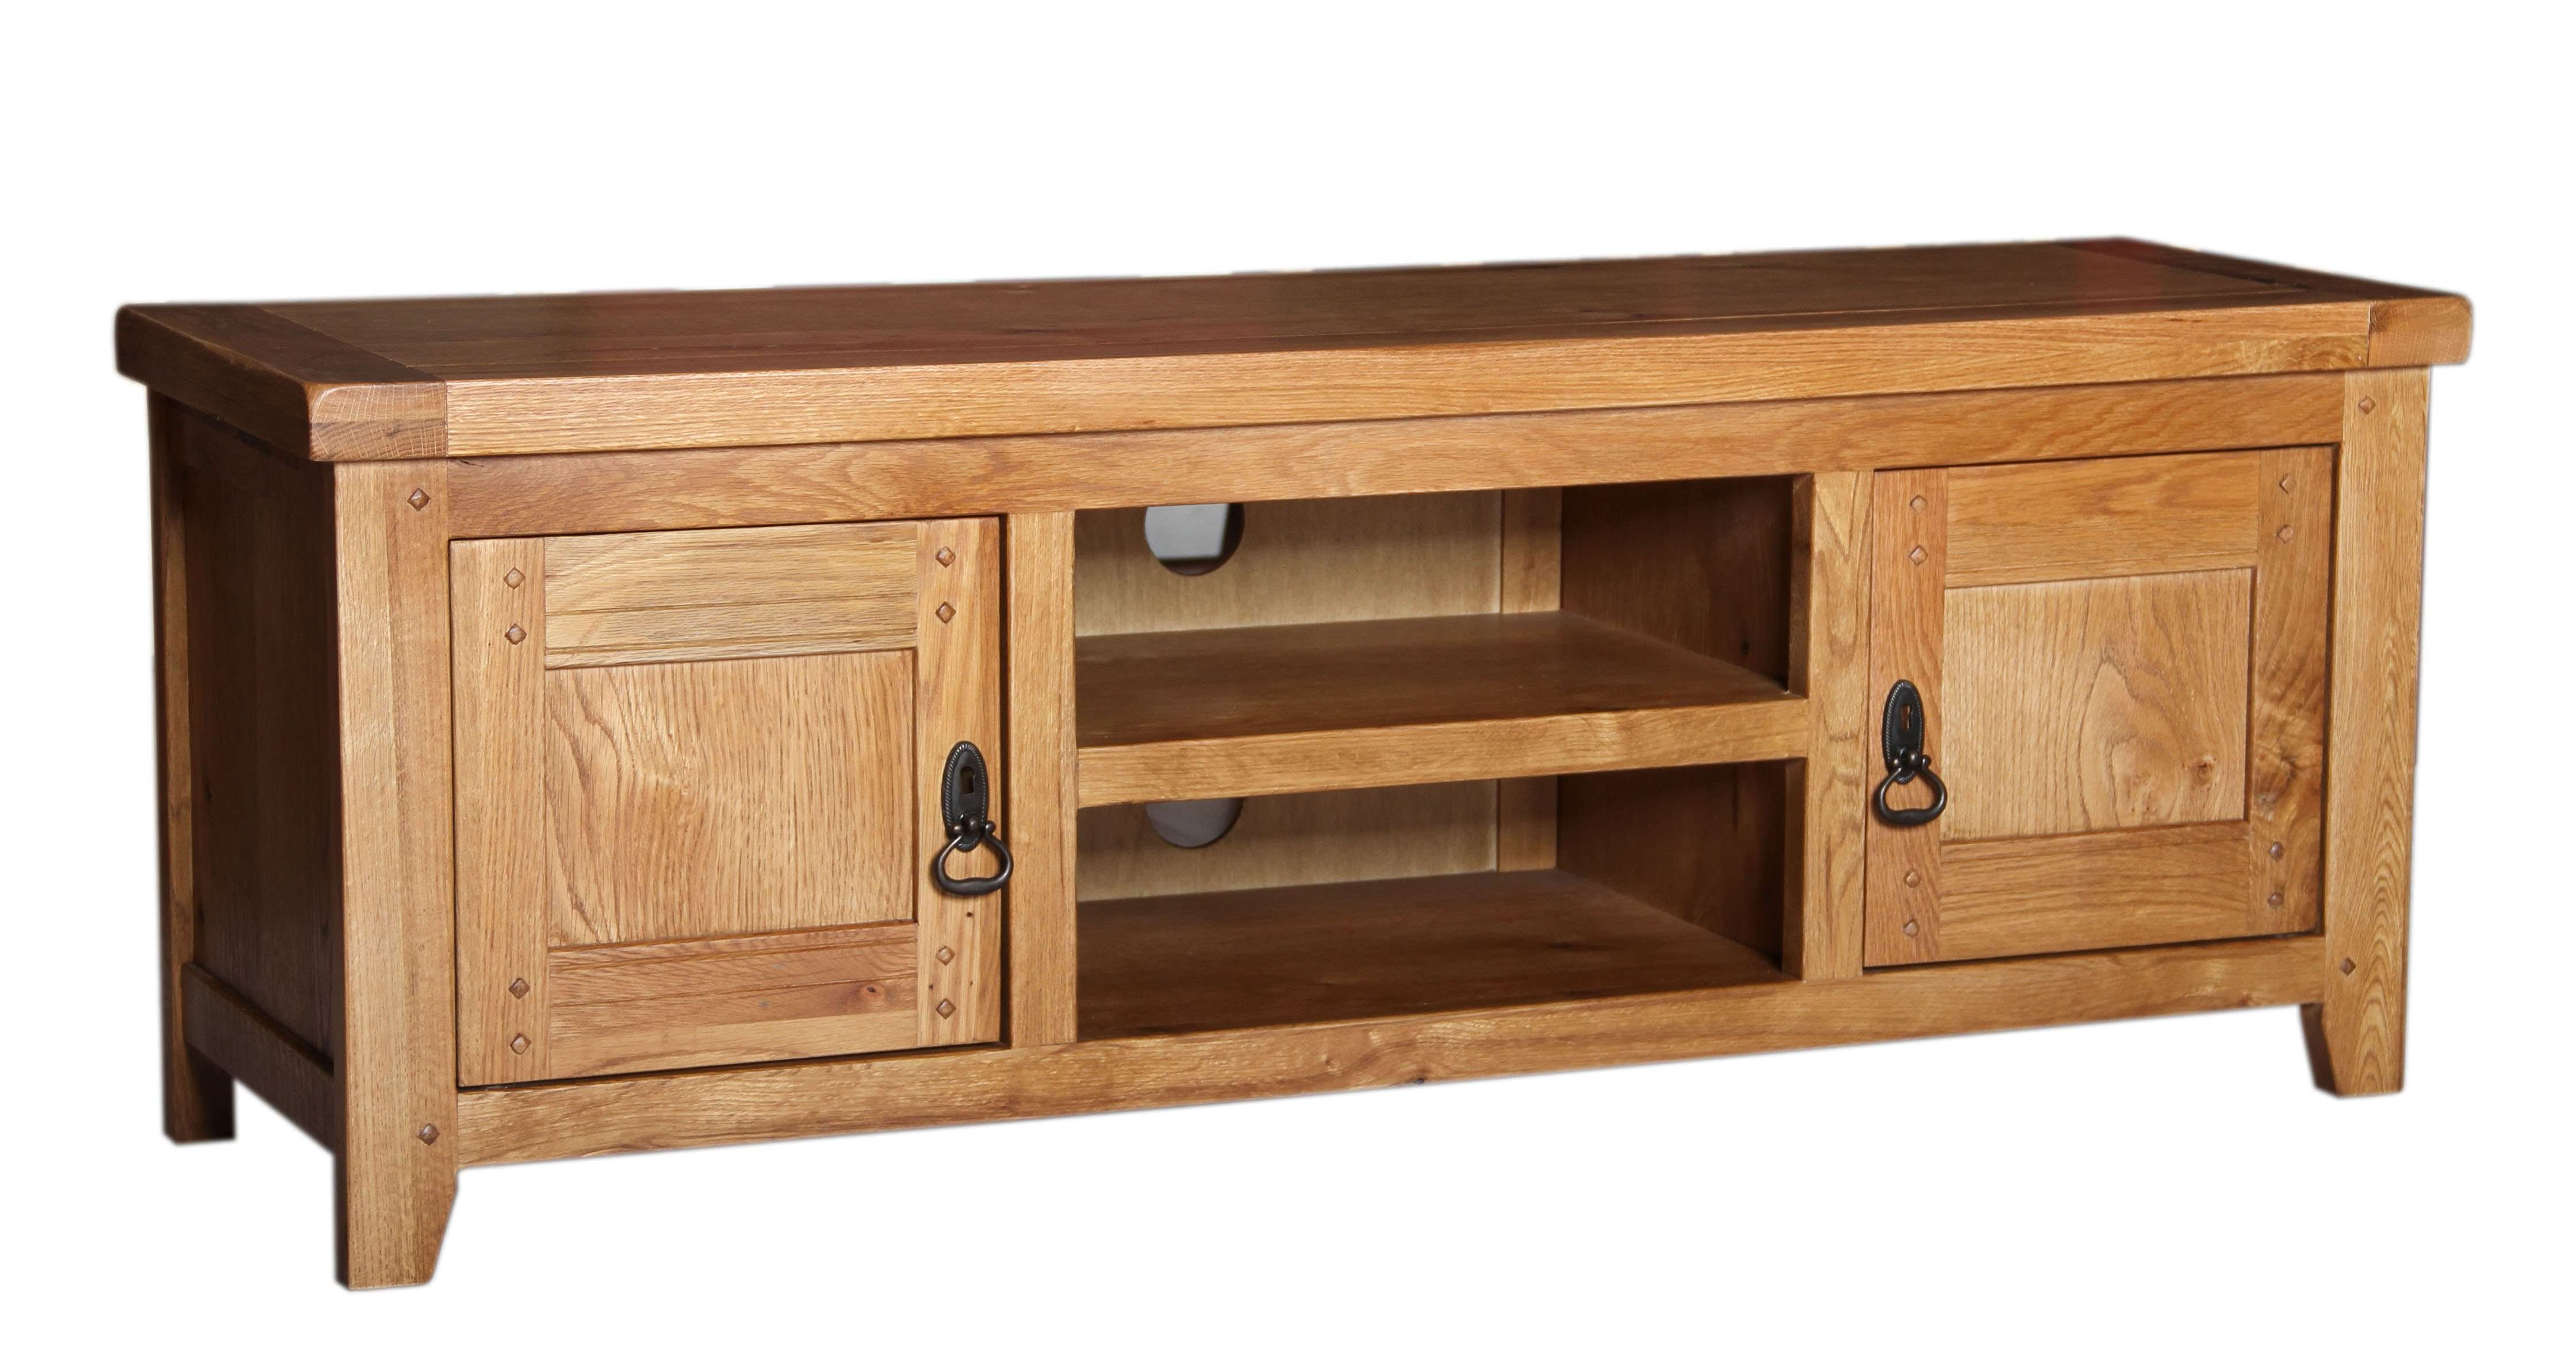 Sparkling Rustic Oak Low Tv Cabinet For Tv Cabinet Rustic Images Throughout Low Oak Tv Stands (View 16 of 20)